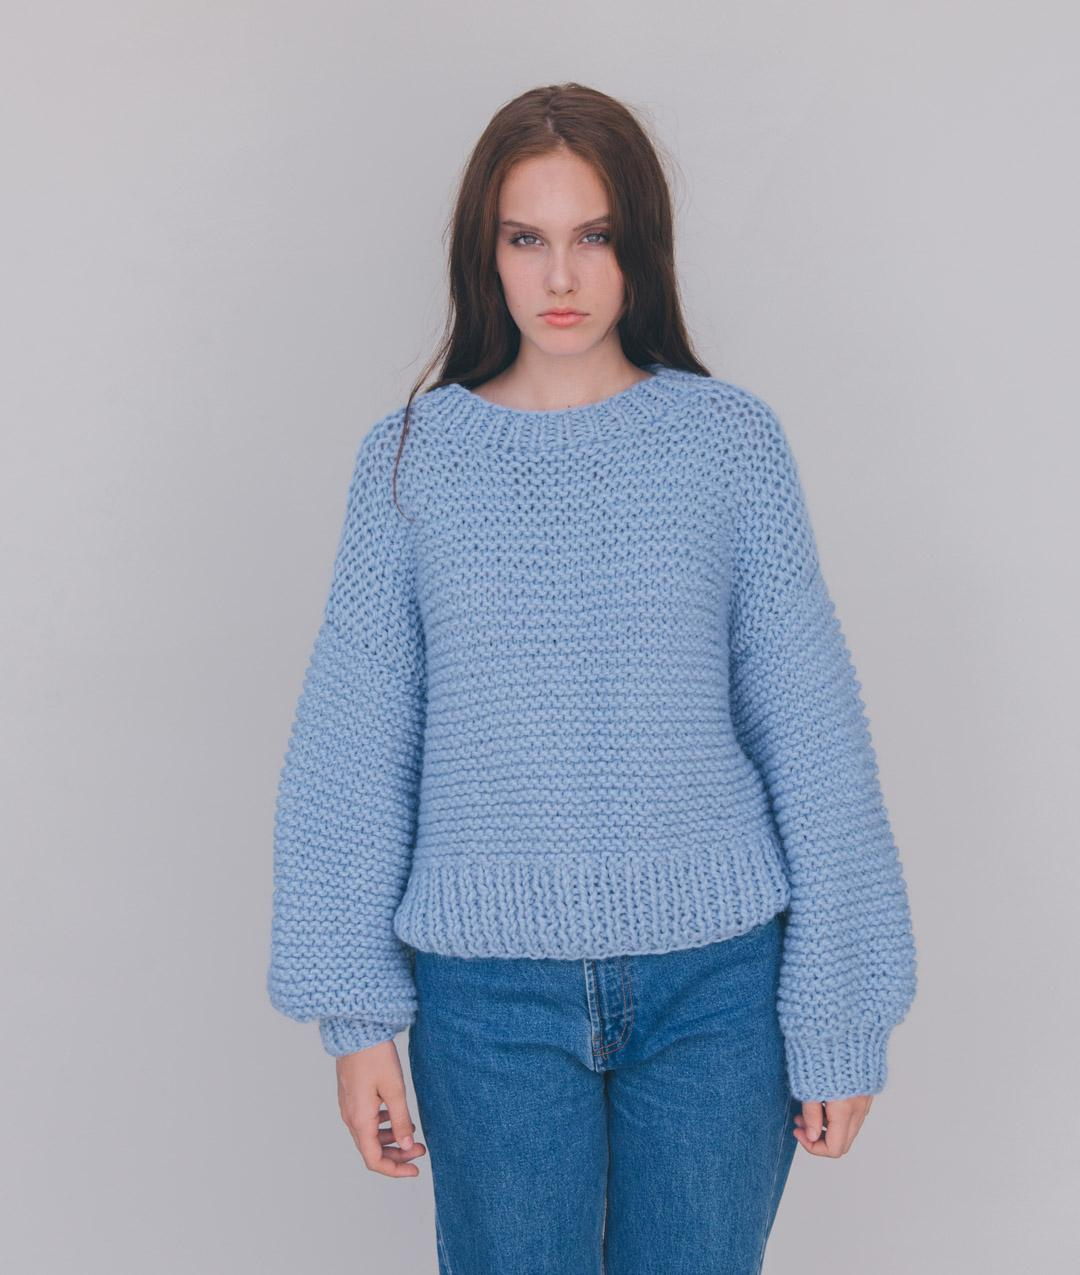 Fall / Winter 2018-19 Collection - Sweaters and Tops - SERENITY PULL - 1